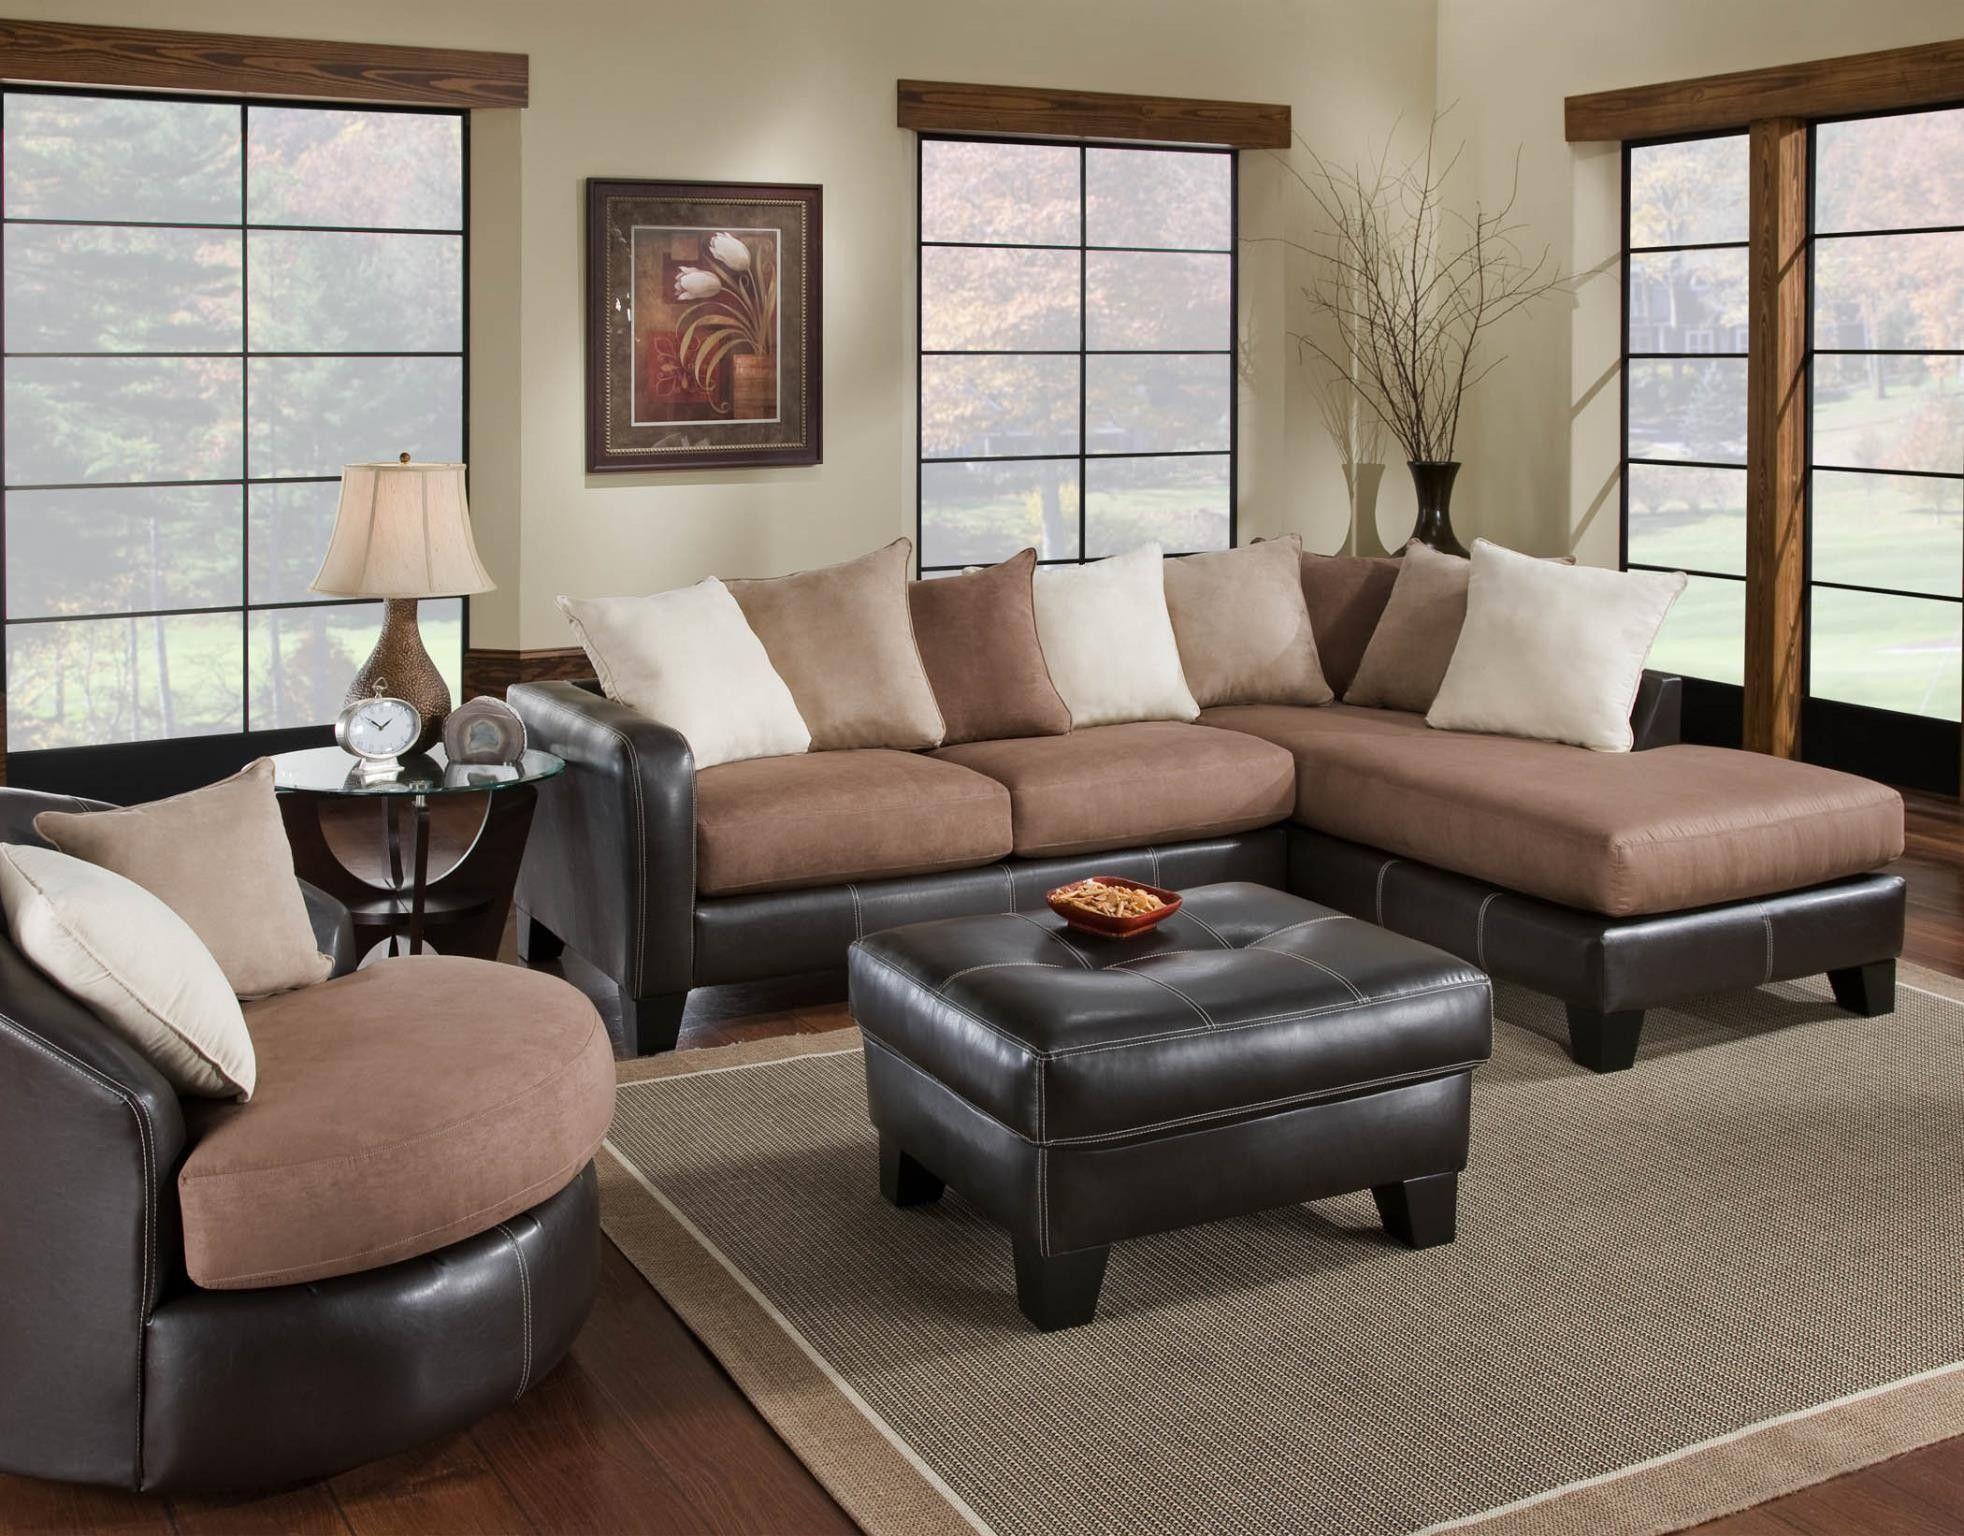 Albany 360 61 67 50118 San Marino Mocha Truffle Sectional Living Room Furniture SetsLiving SectionalSectional SofasLiving